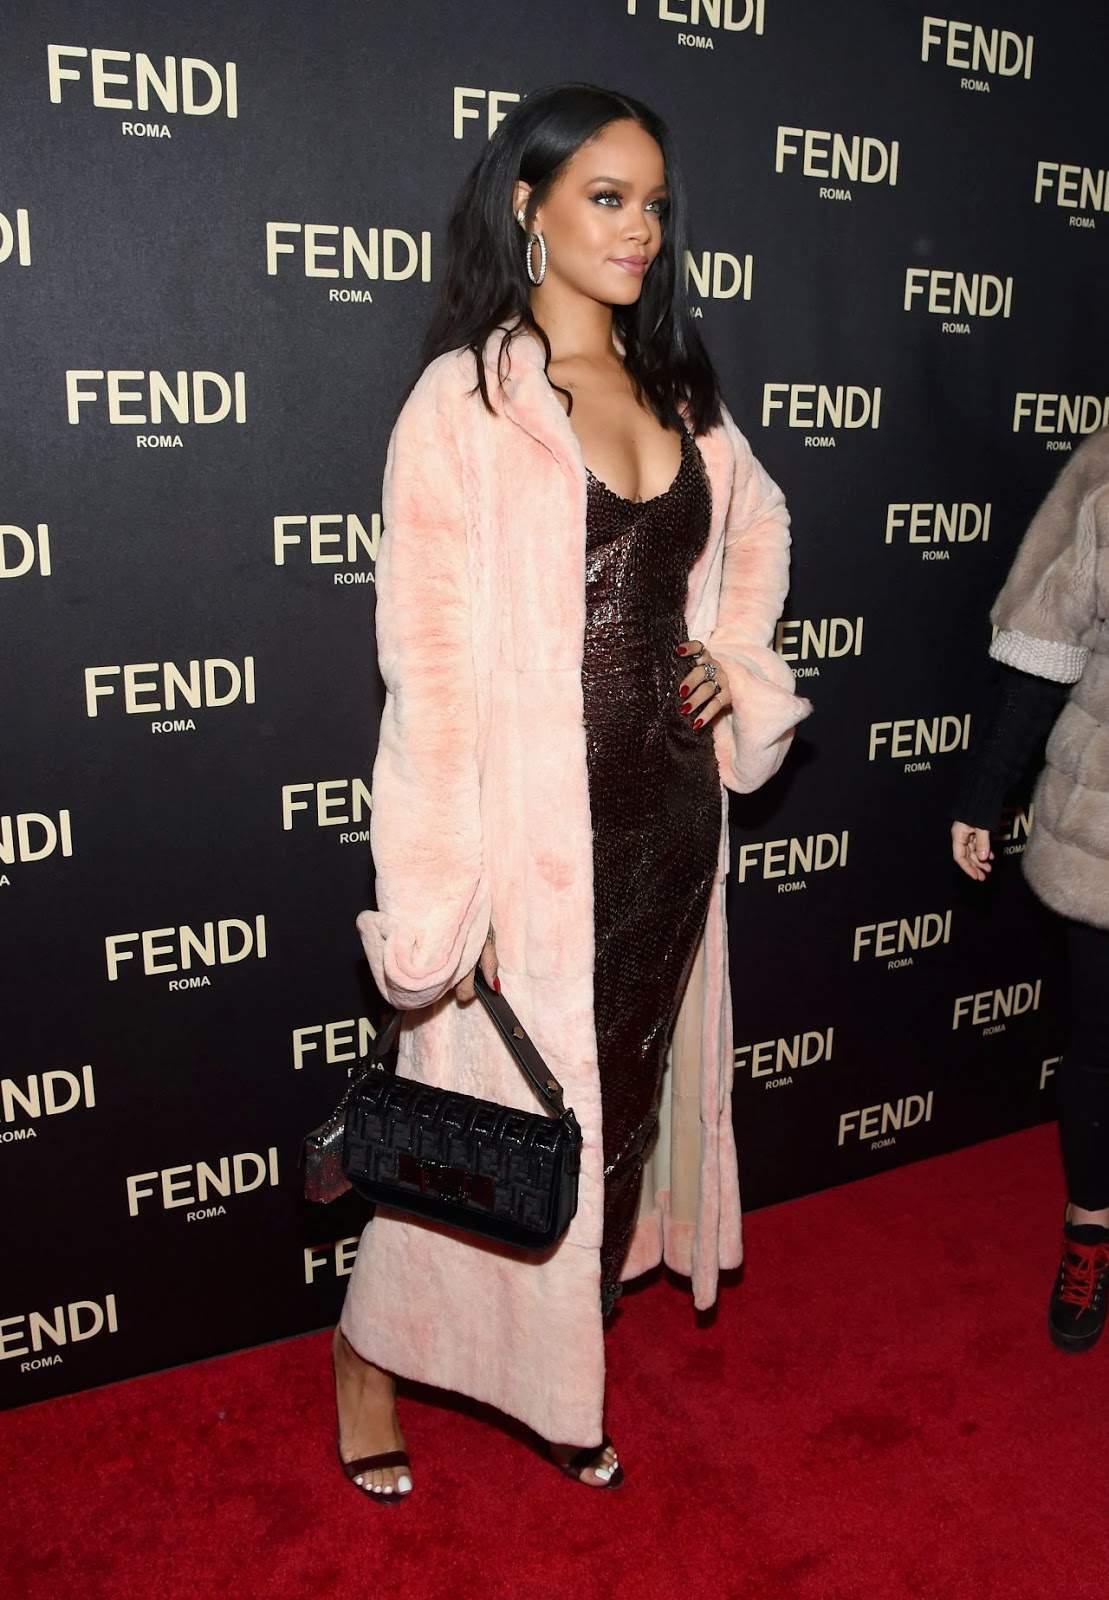 Rihanna in a slinky dress at the Fendi New York Flagship Boutique Launch Party